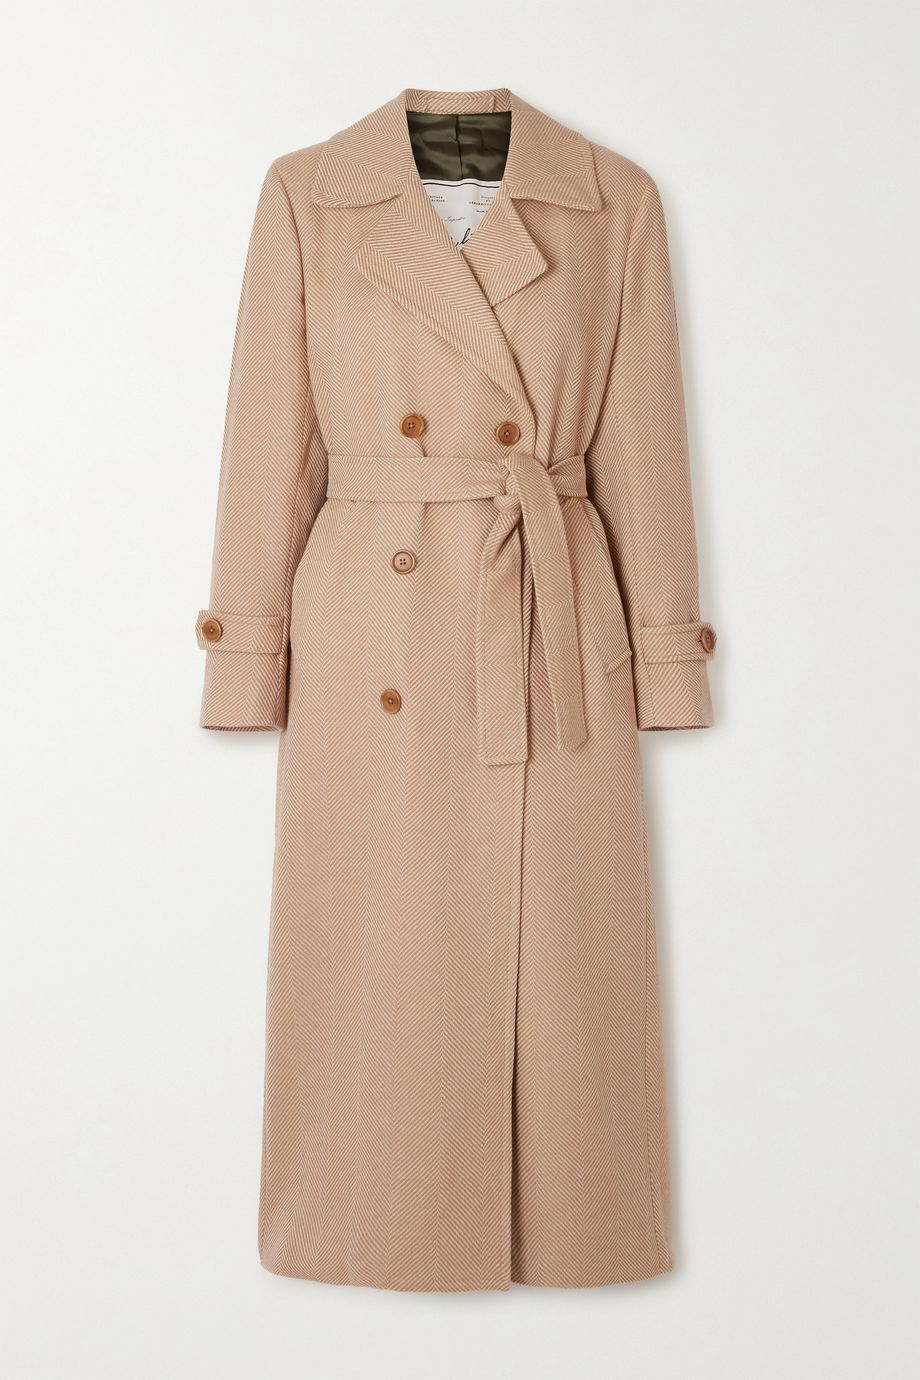 Giuliva Heritage The Christie belted double-breasted wool-gabardine trench coat